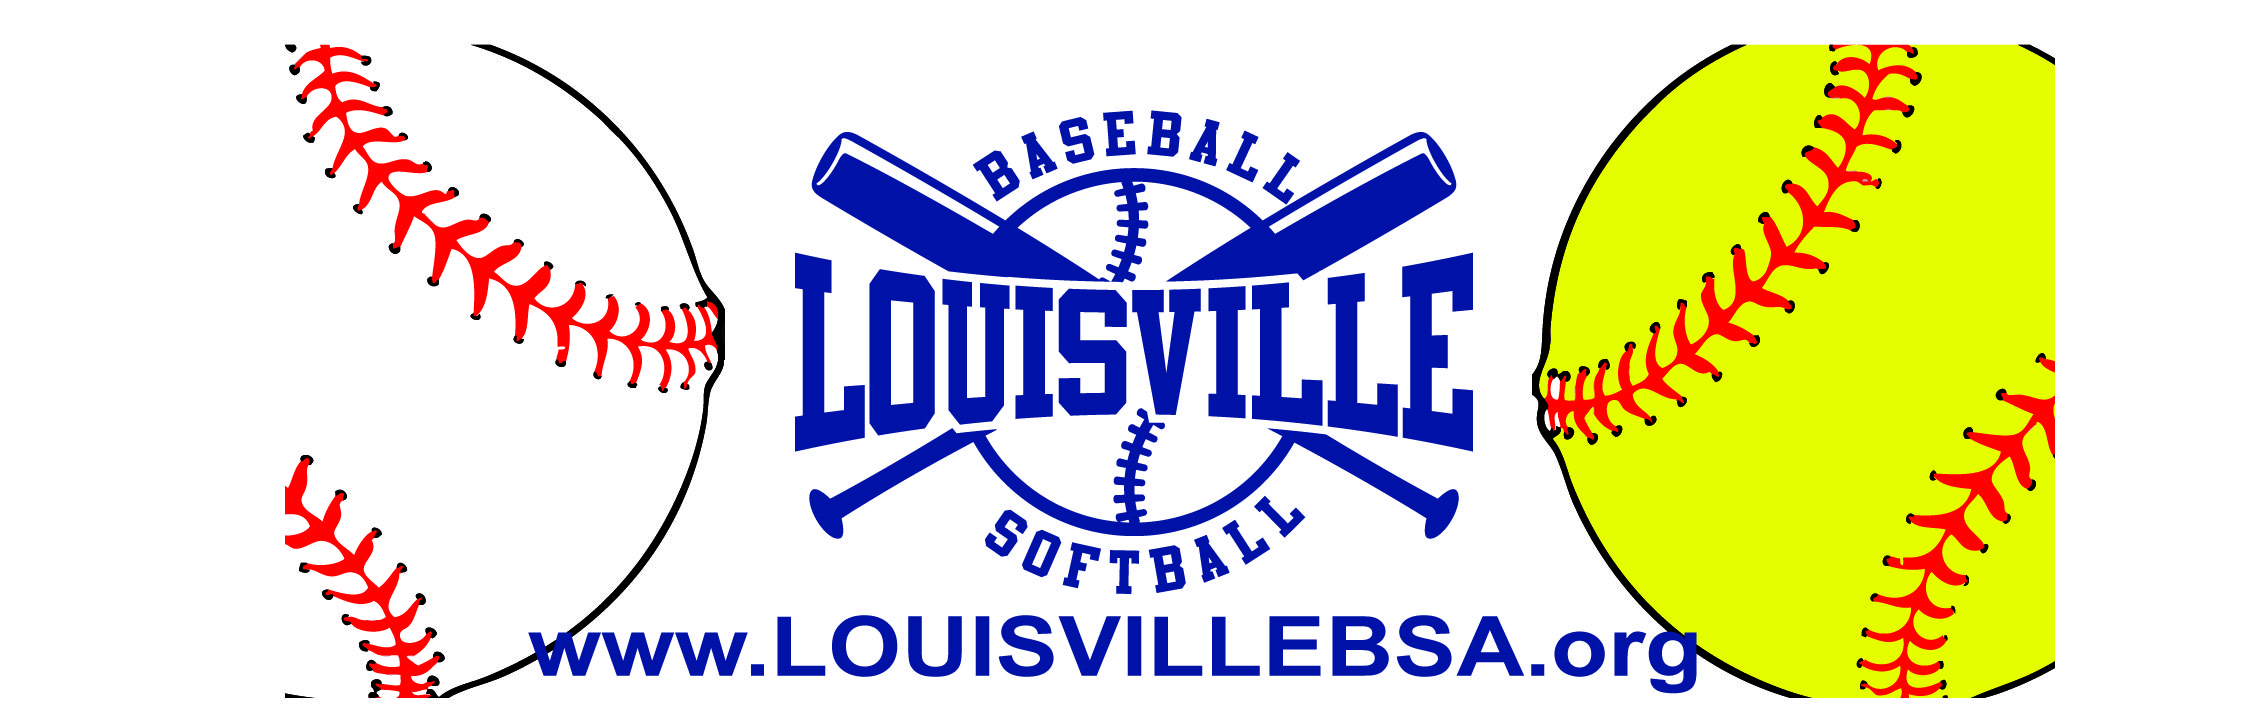 Louisville Baseball and Softball Association, Baseball, Run, Field